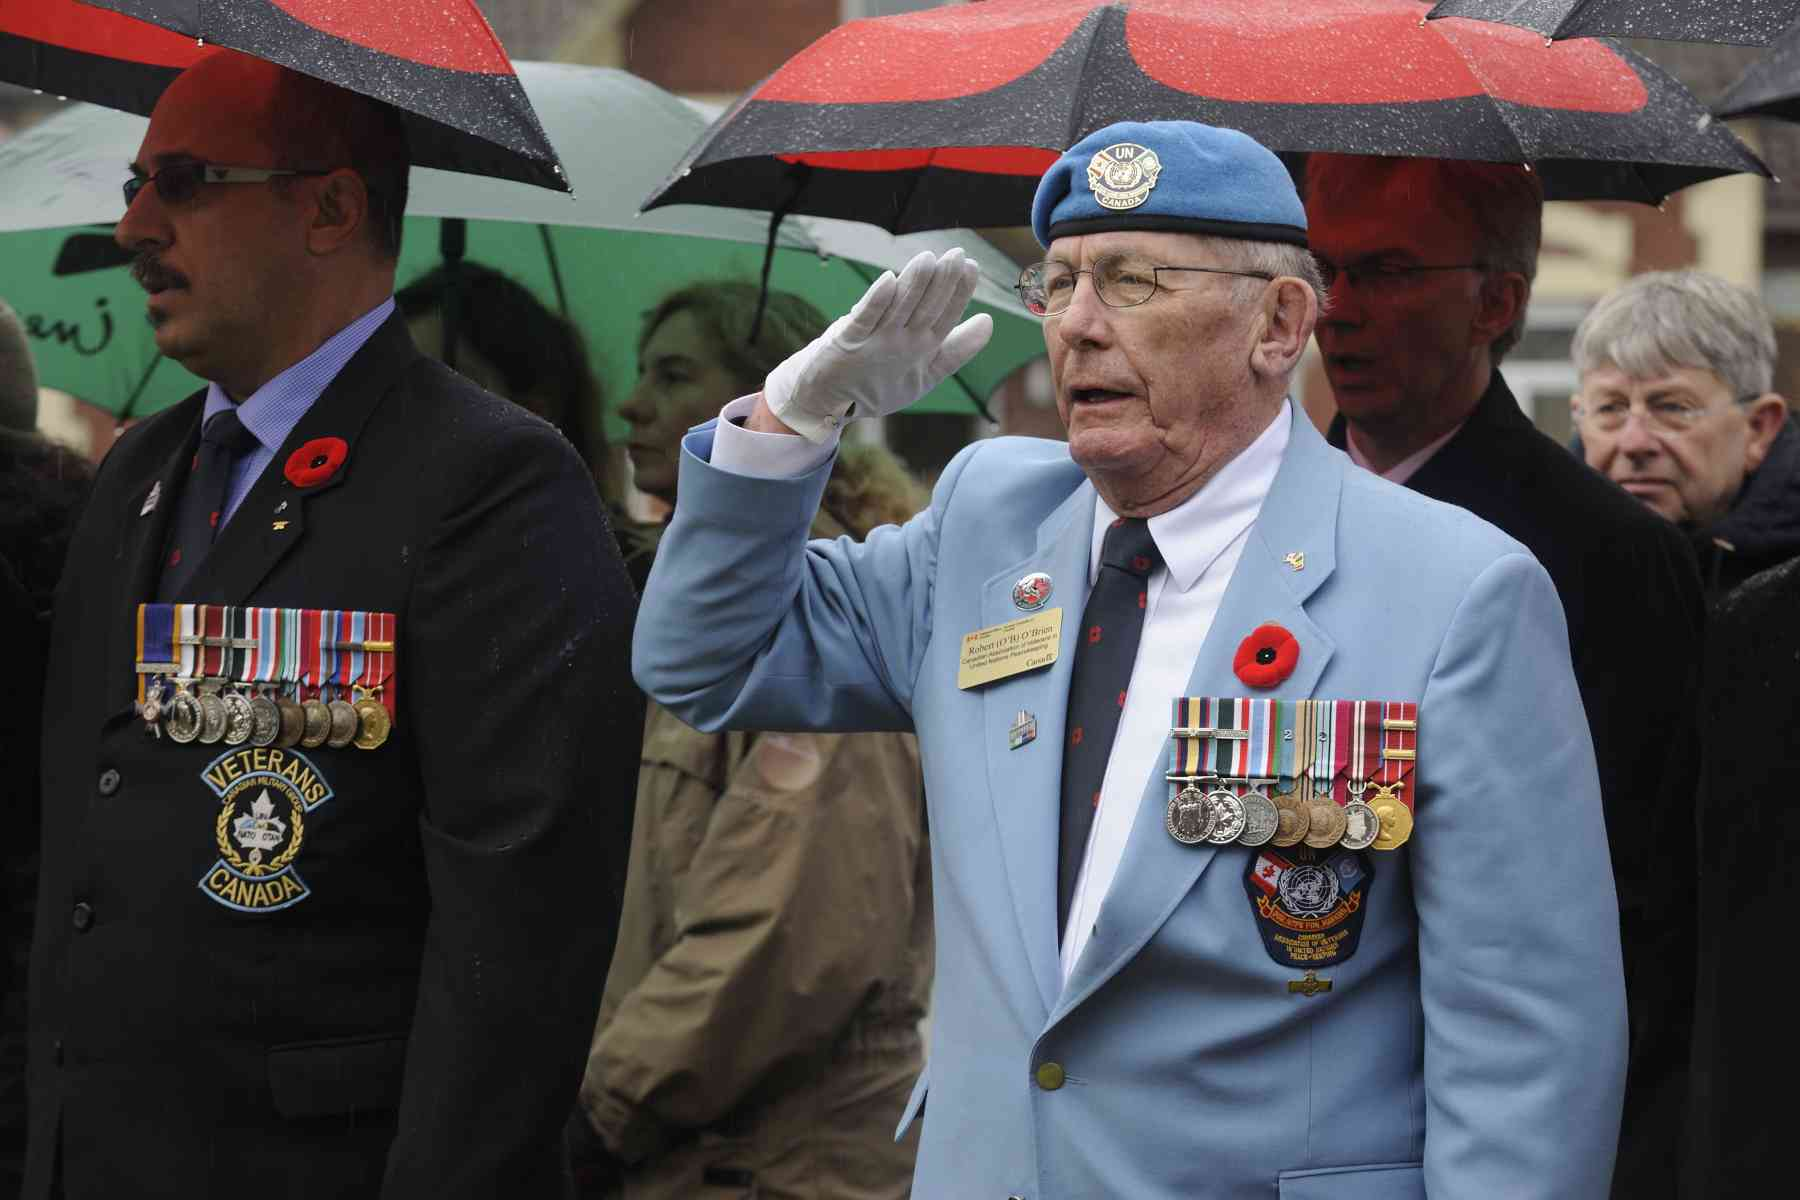 Mr. Robert O'Brien of the Canadian Association of Veterans in United Nations Peacekeeping salutes proudly.